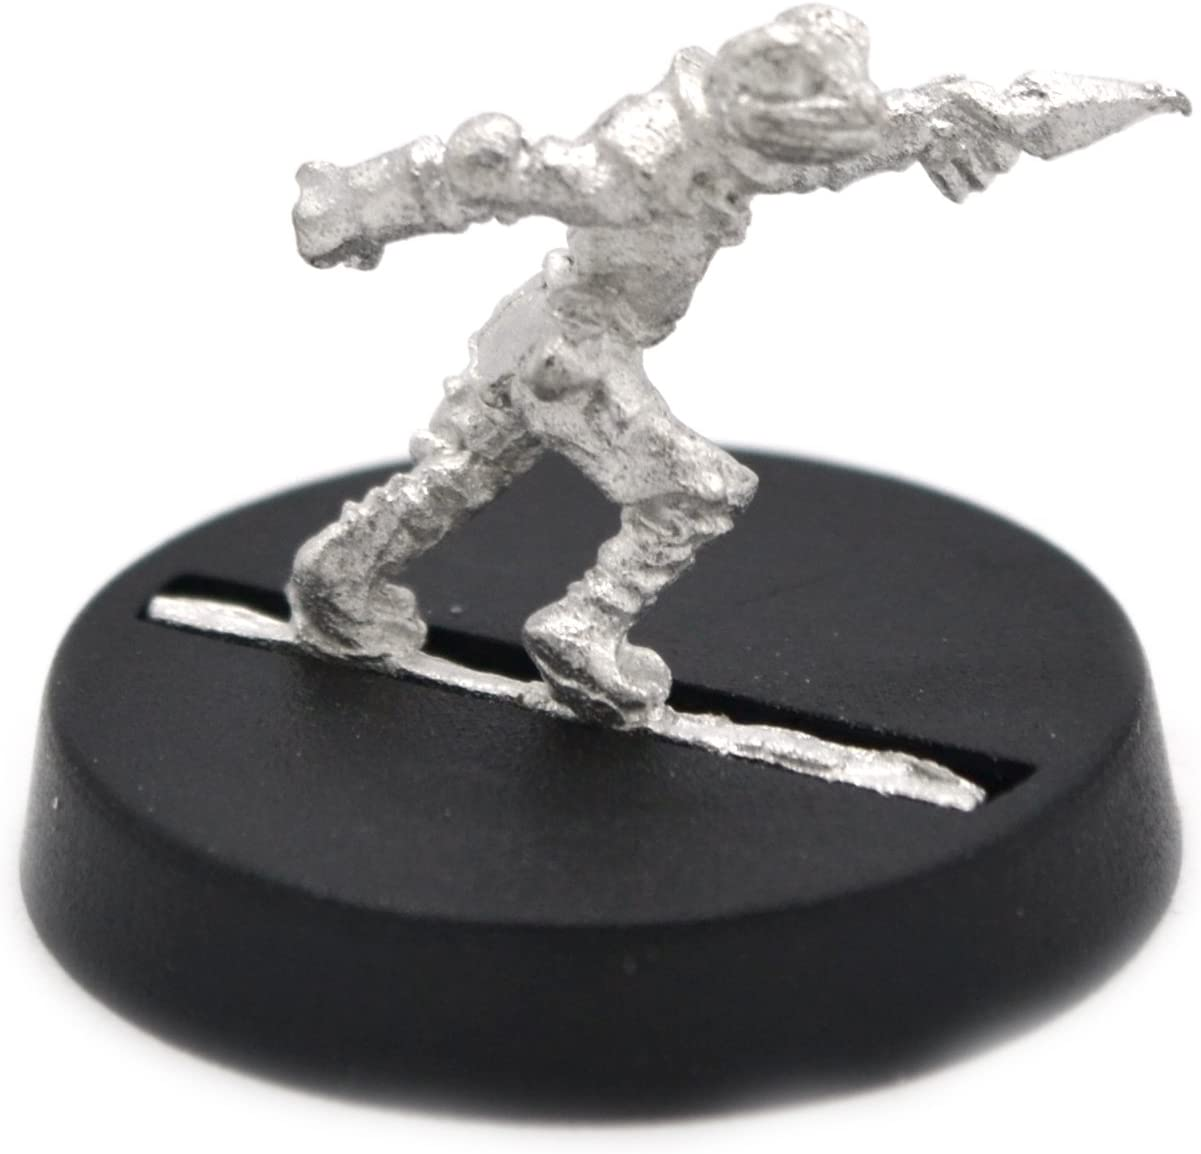 Stonehaven Grippli Rogue Miniature Figure for 28mm-Scale Tabletop Wargames